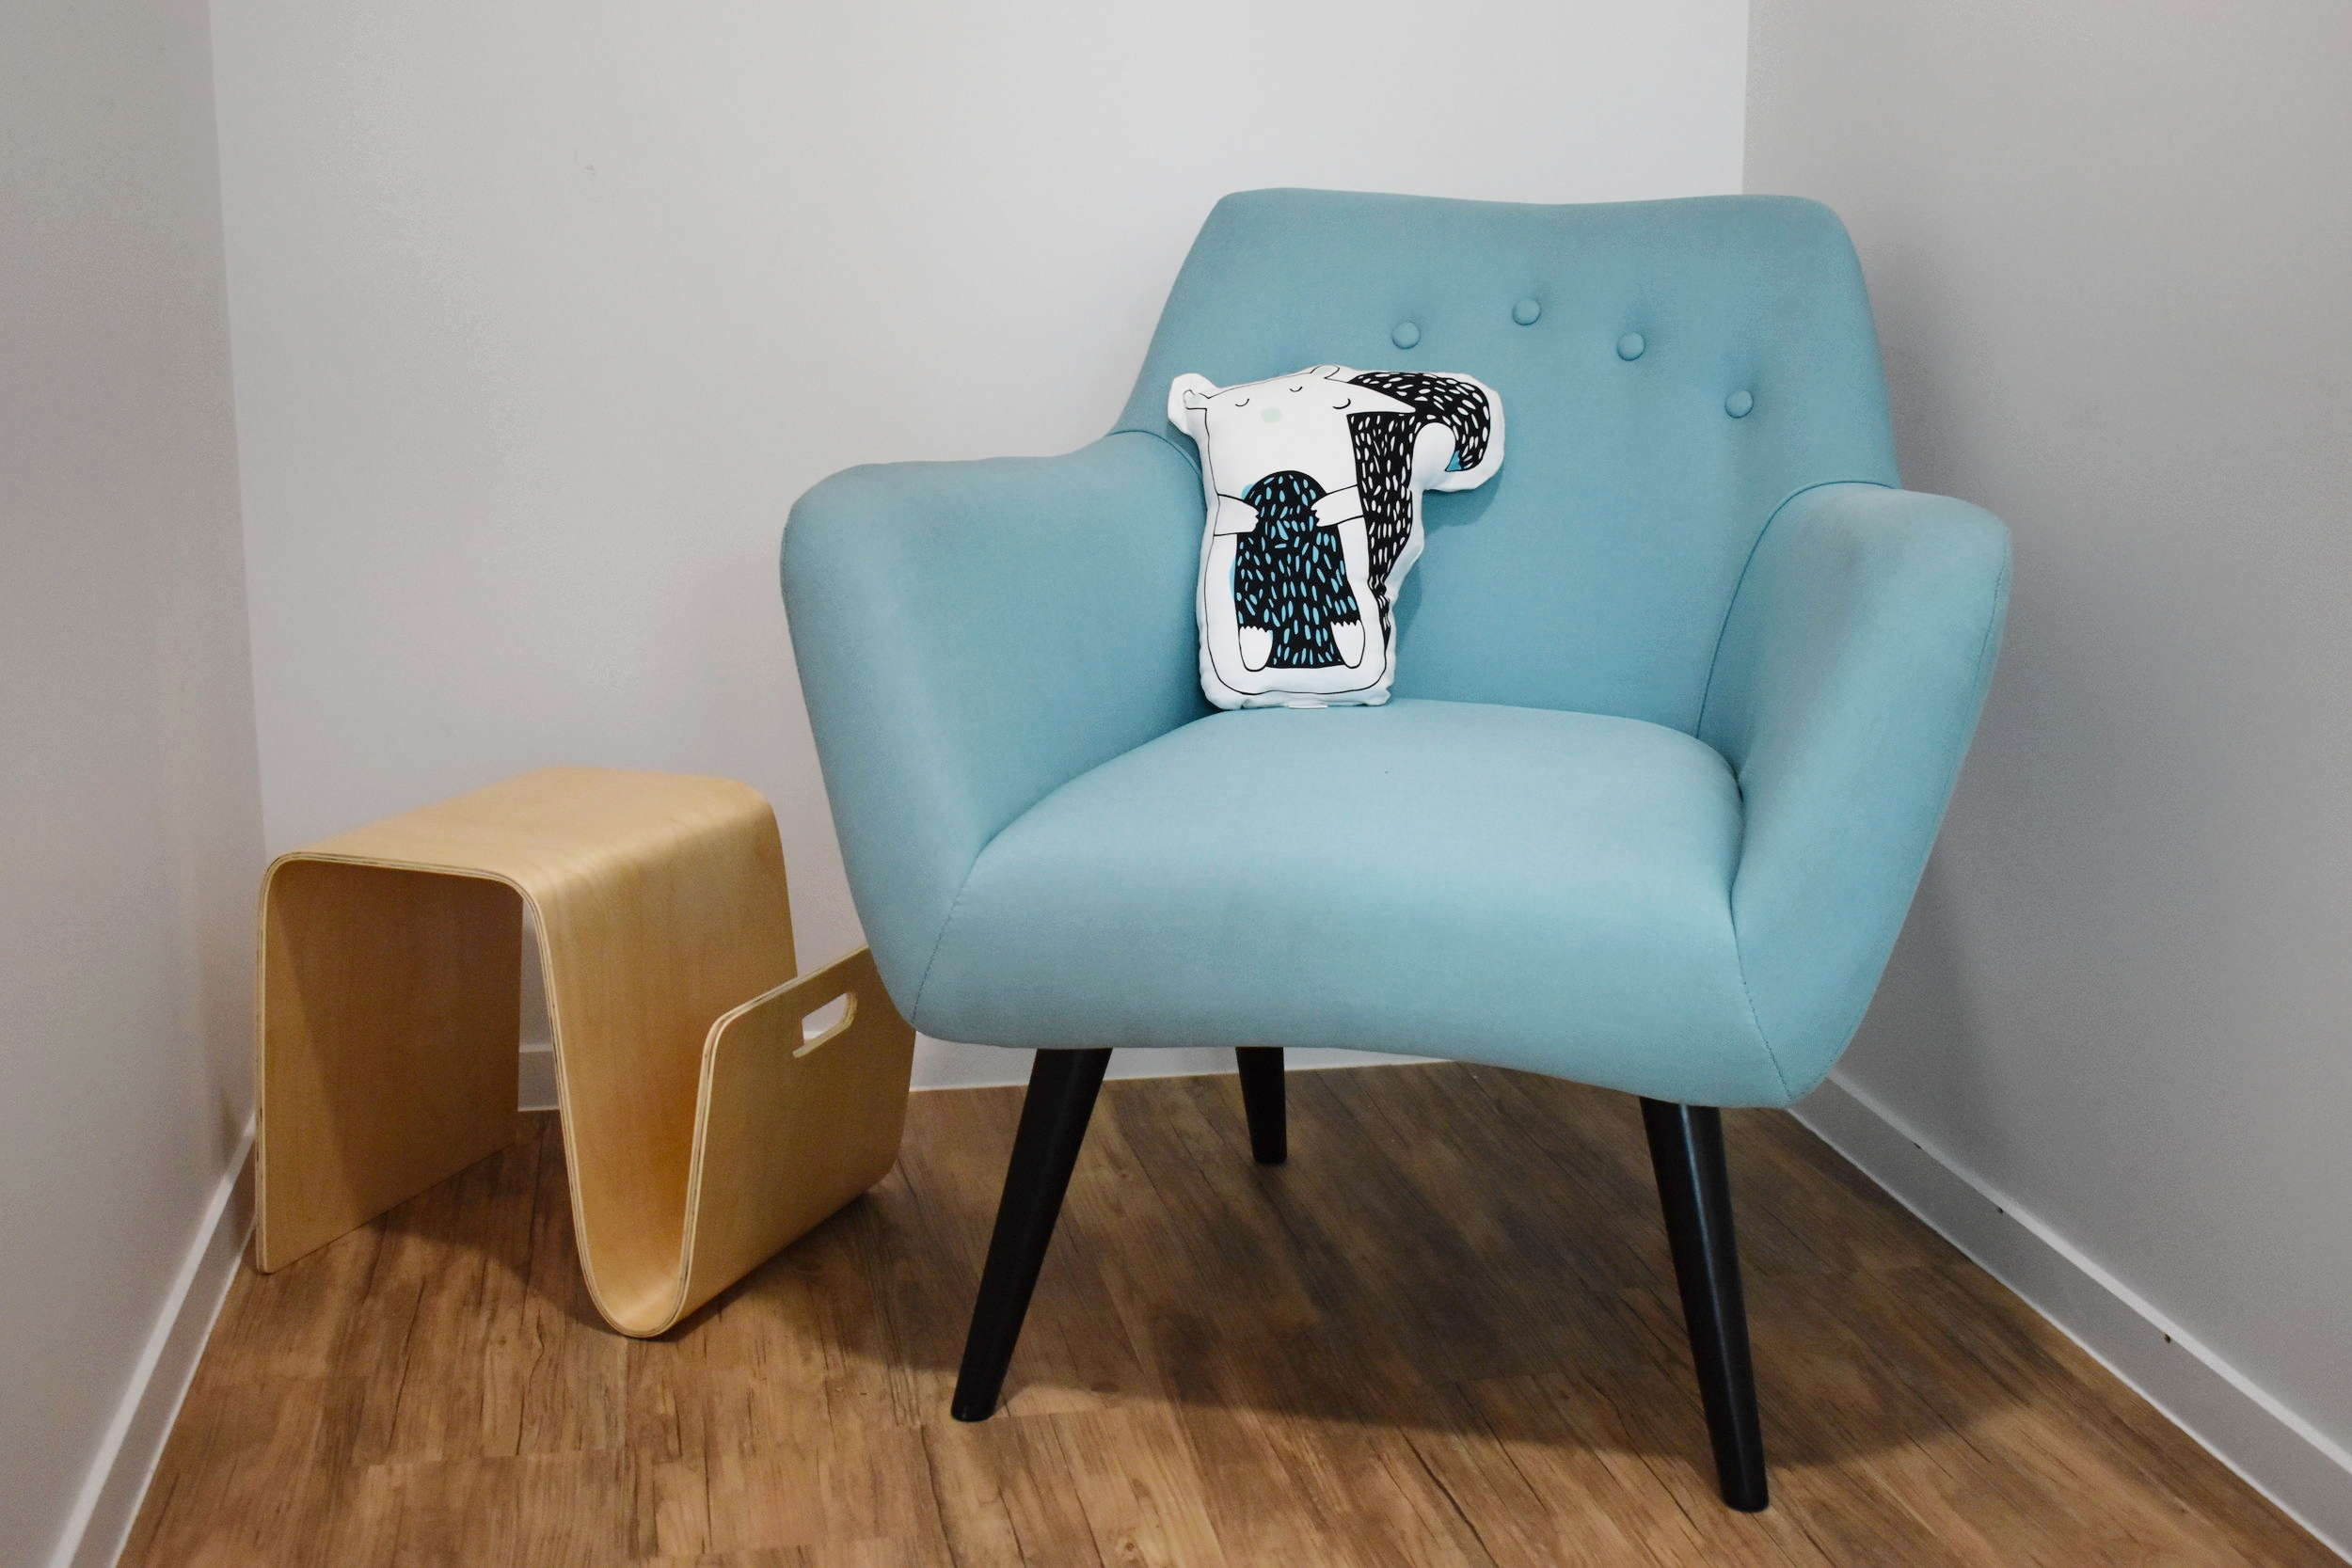 Mothers Feeding Room Armchair with Side Table and Magazine Holder